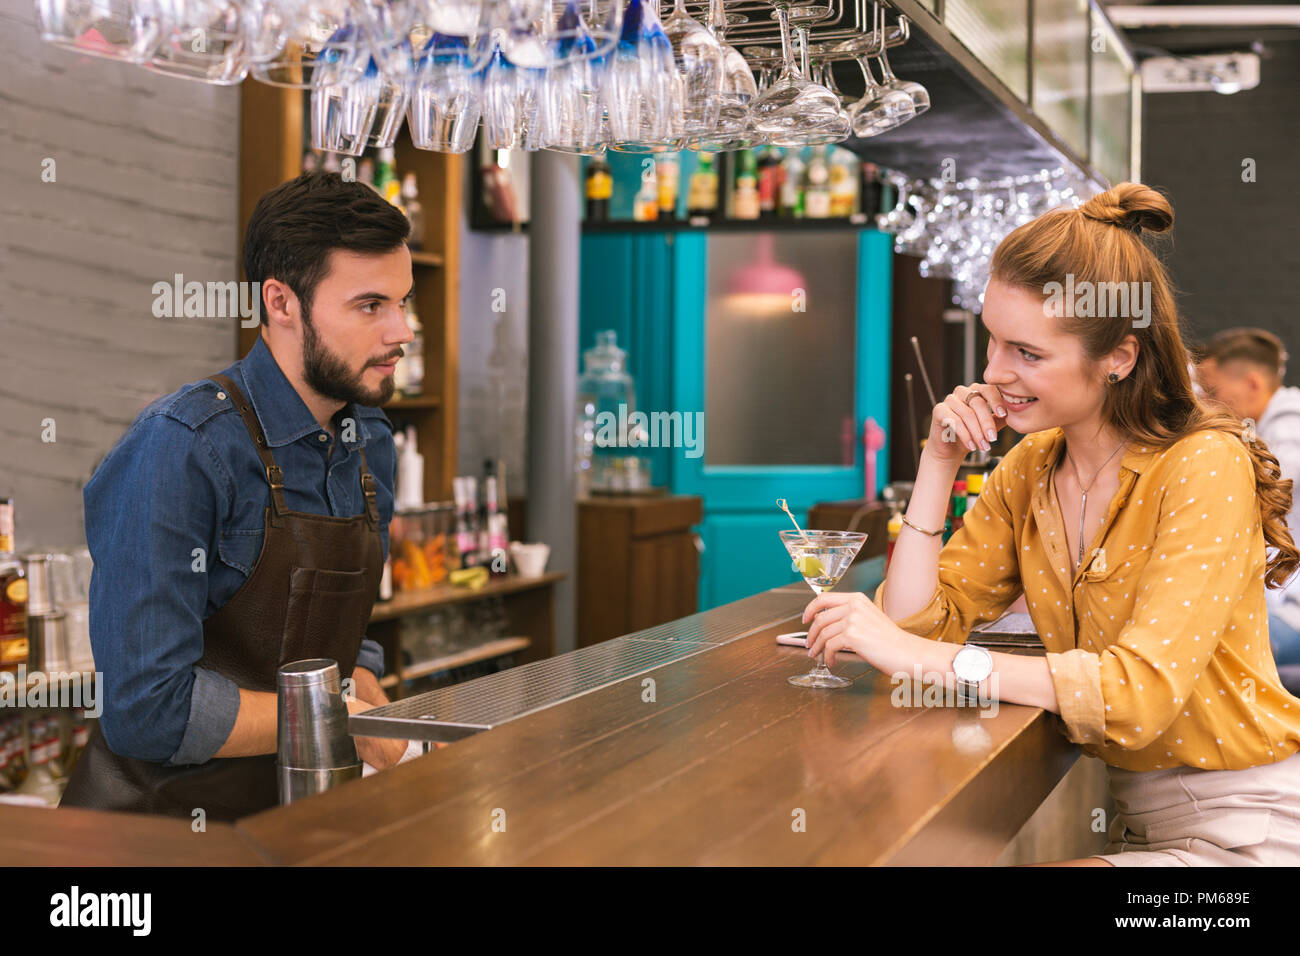 Pretty young girl smiling and flirting with the barman - Stock Image